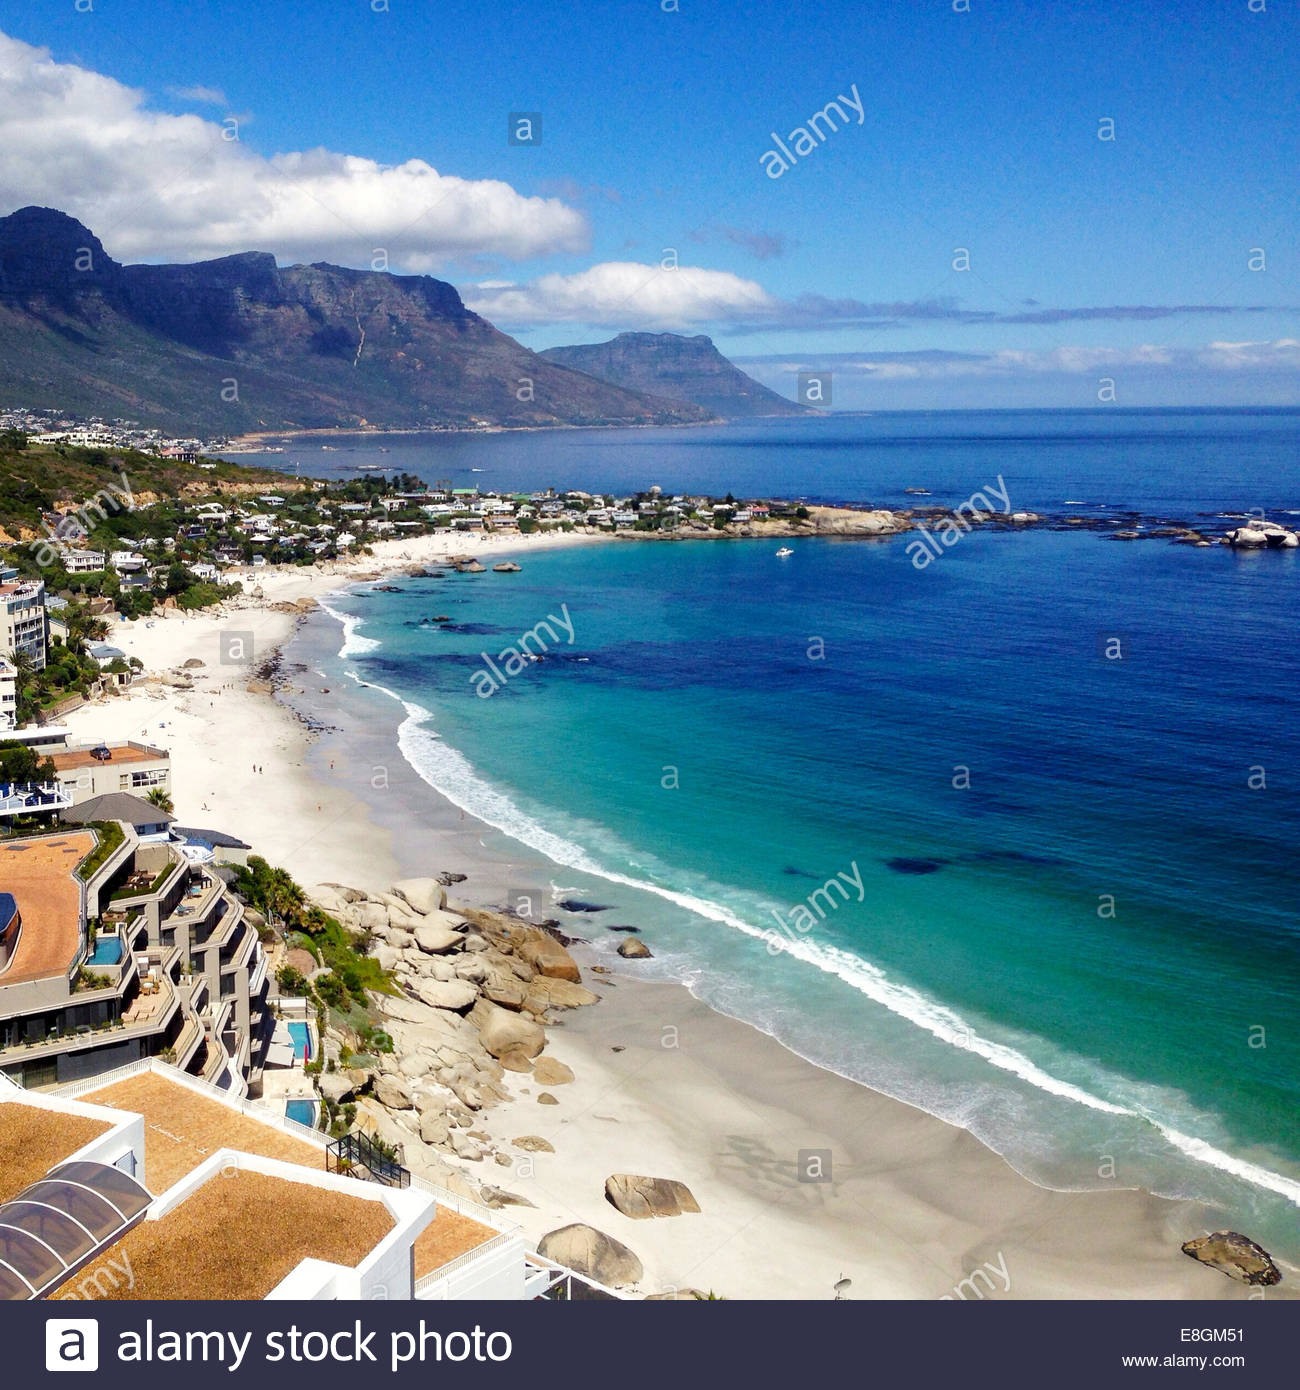 South Africa, Elevated view of coastline - Stock Image